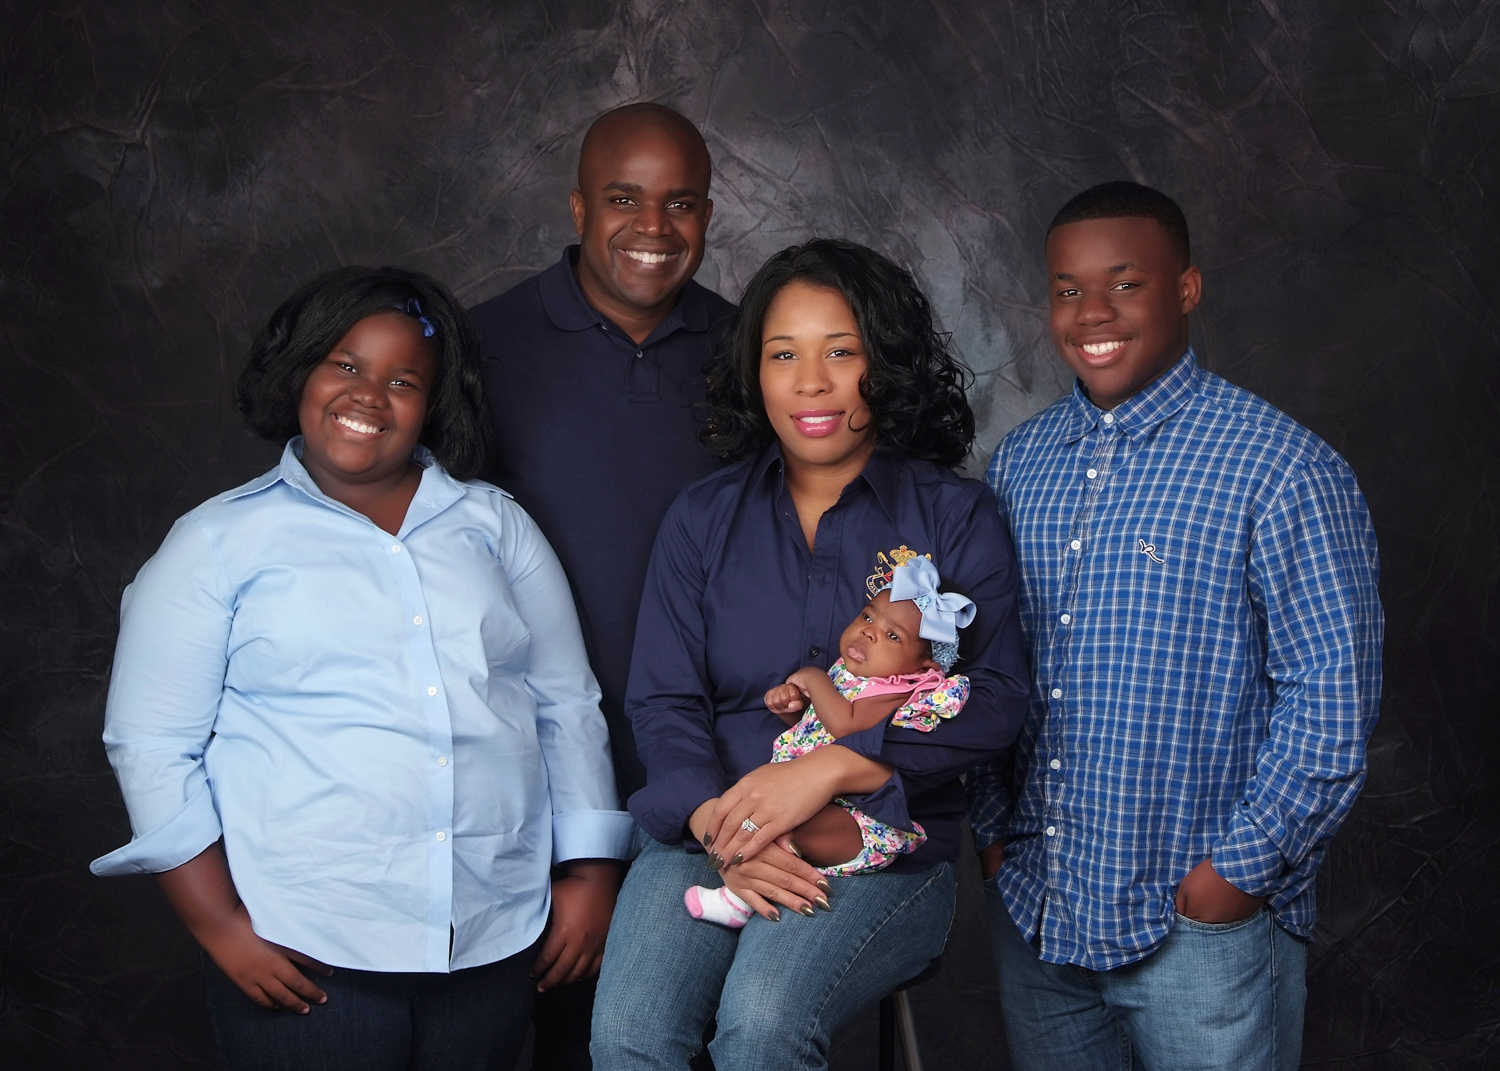 family_pictures_portraits_beaufort-17.jpg